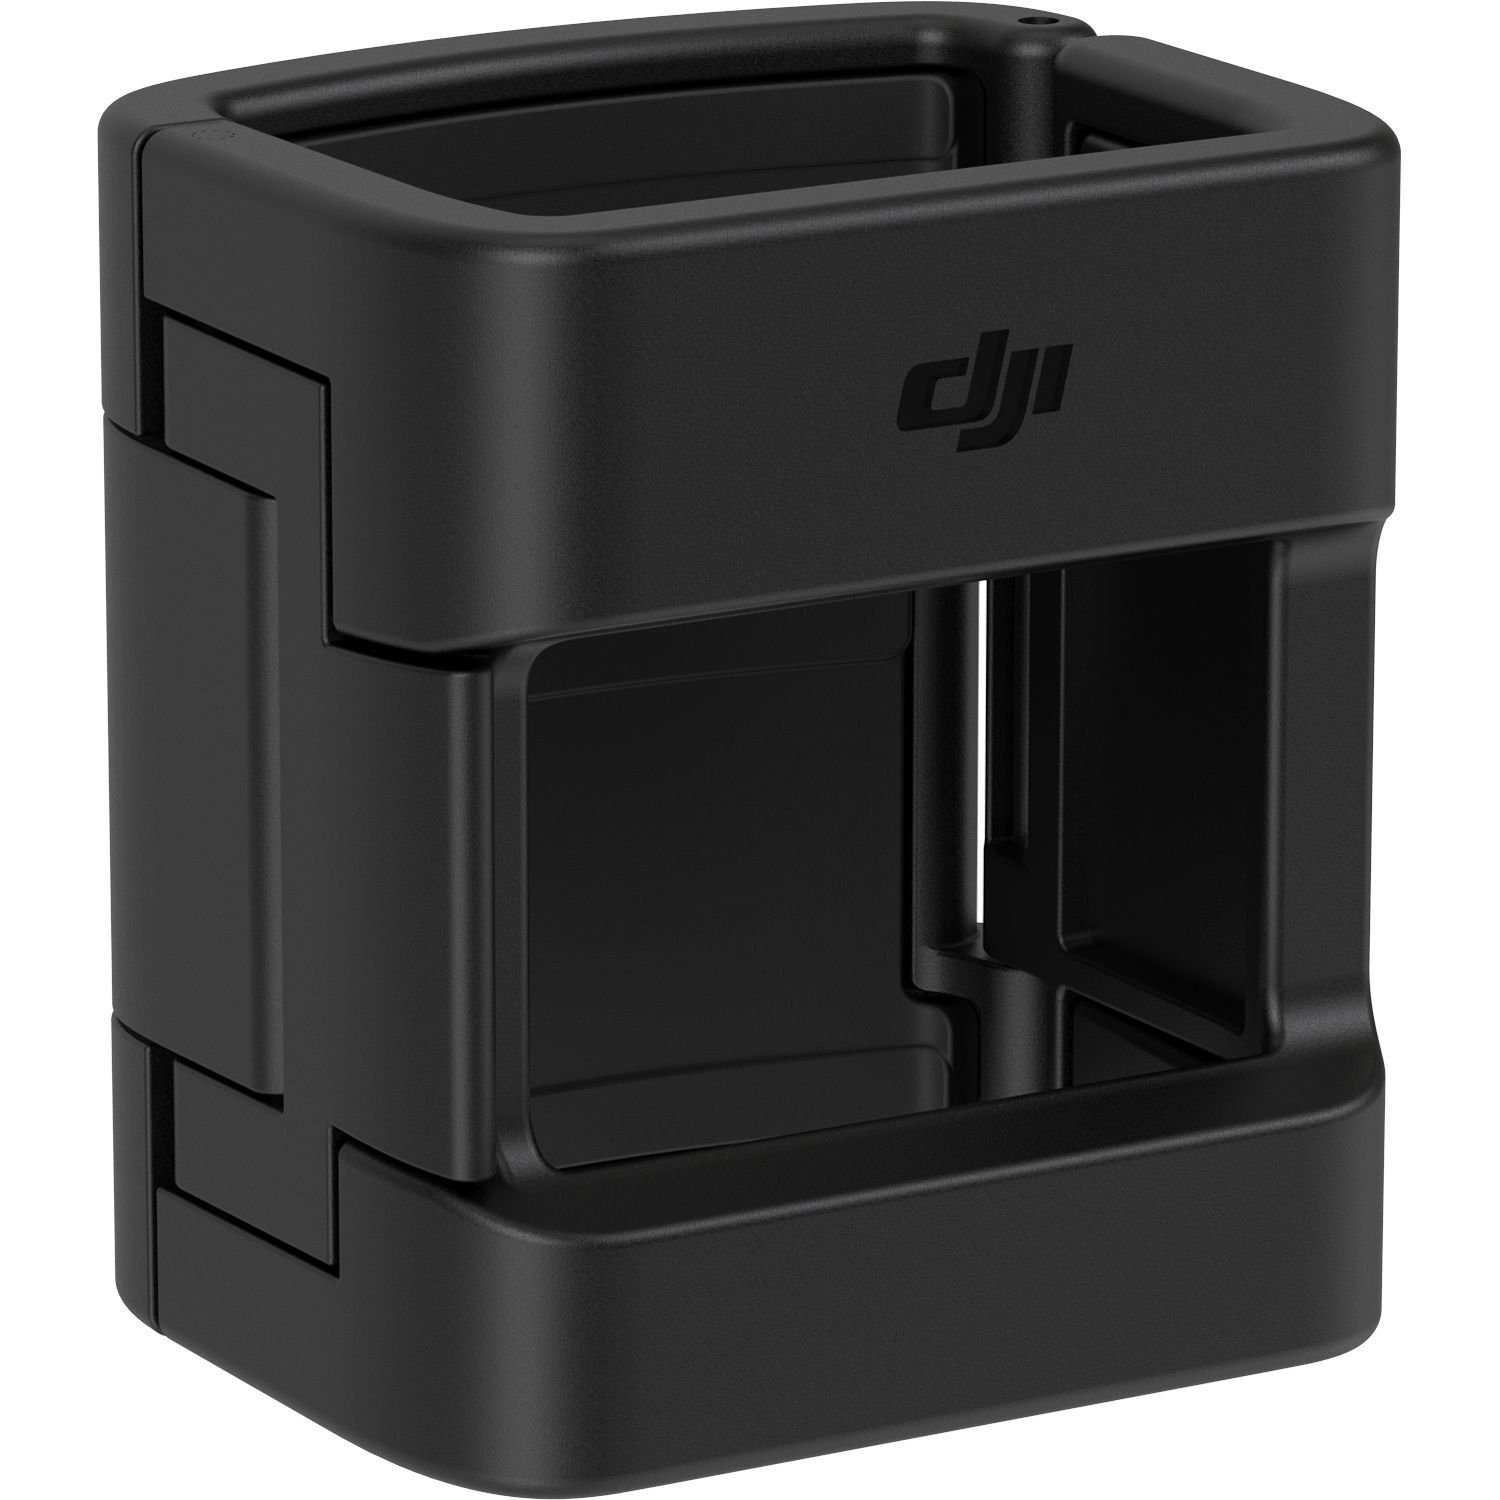 DJI Osmo Pocket Part 3 Accessory Mount CP.OS.00000005.01 - CMS01